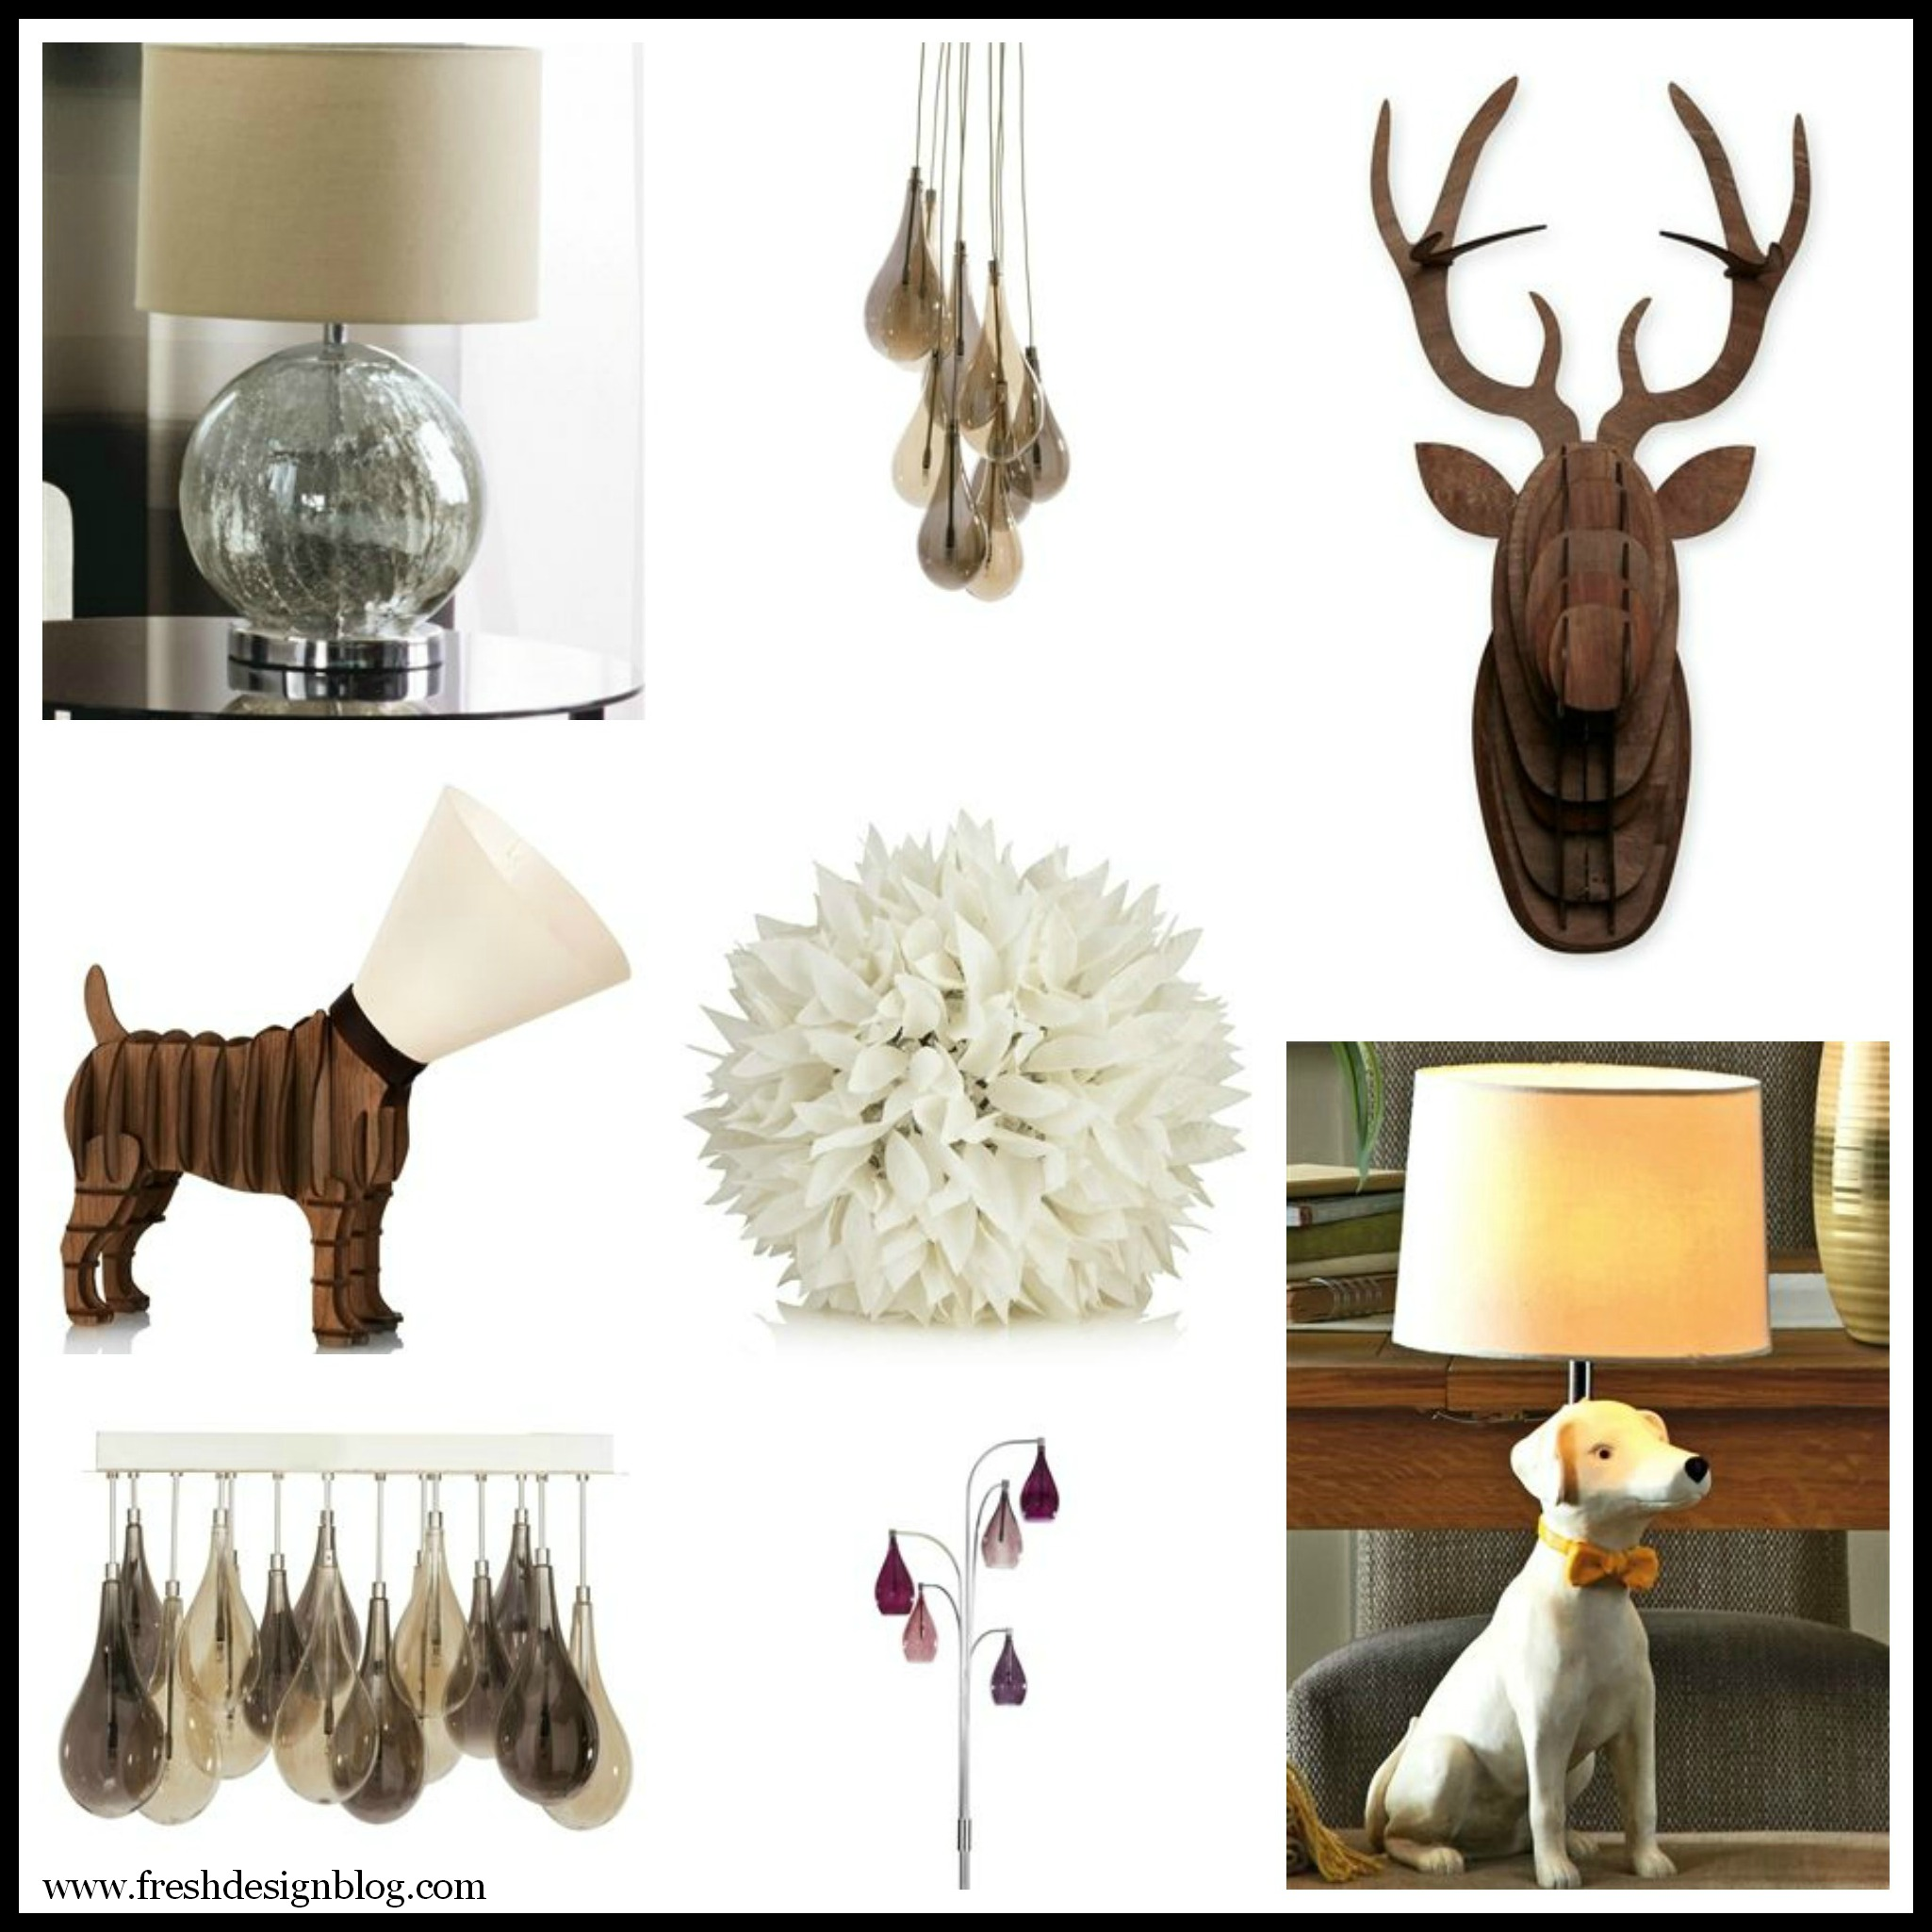 Light up your home: Funky lighting ideas from Next ~ Fresh Design Blog